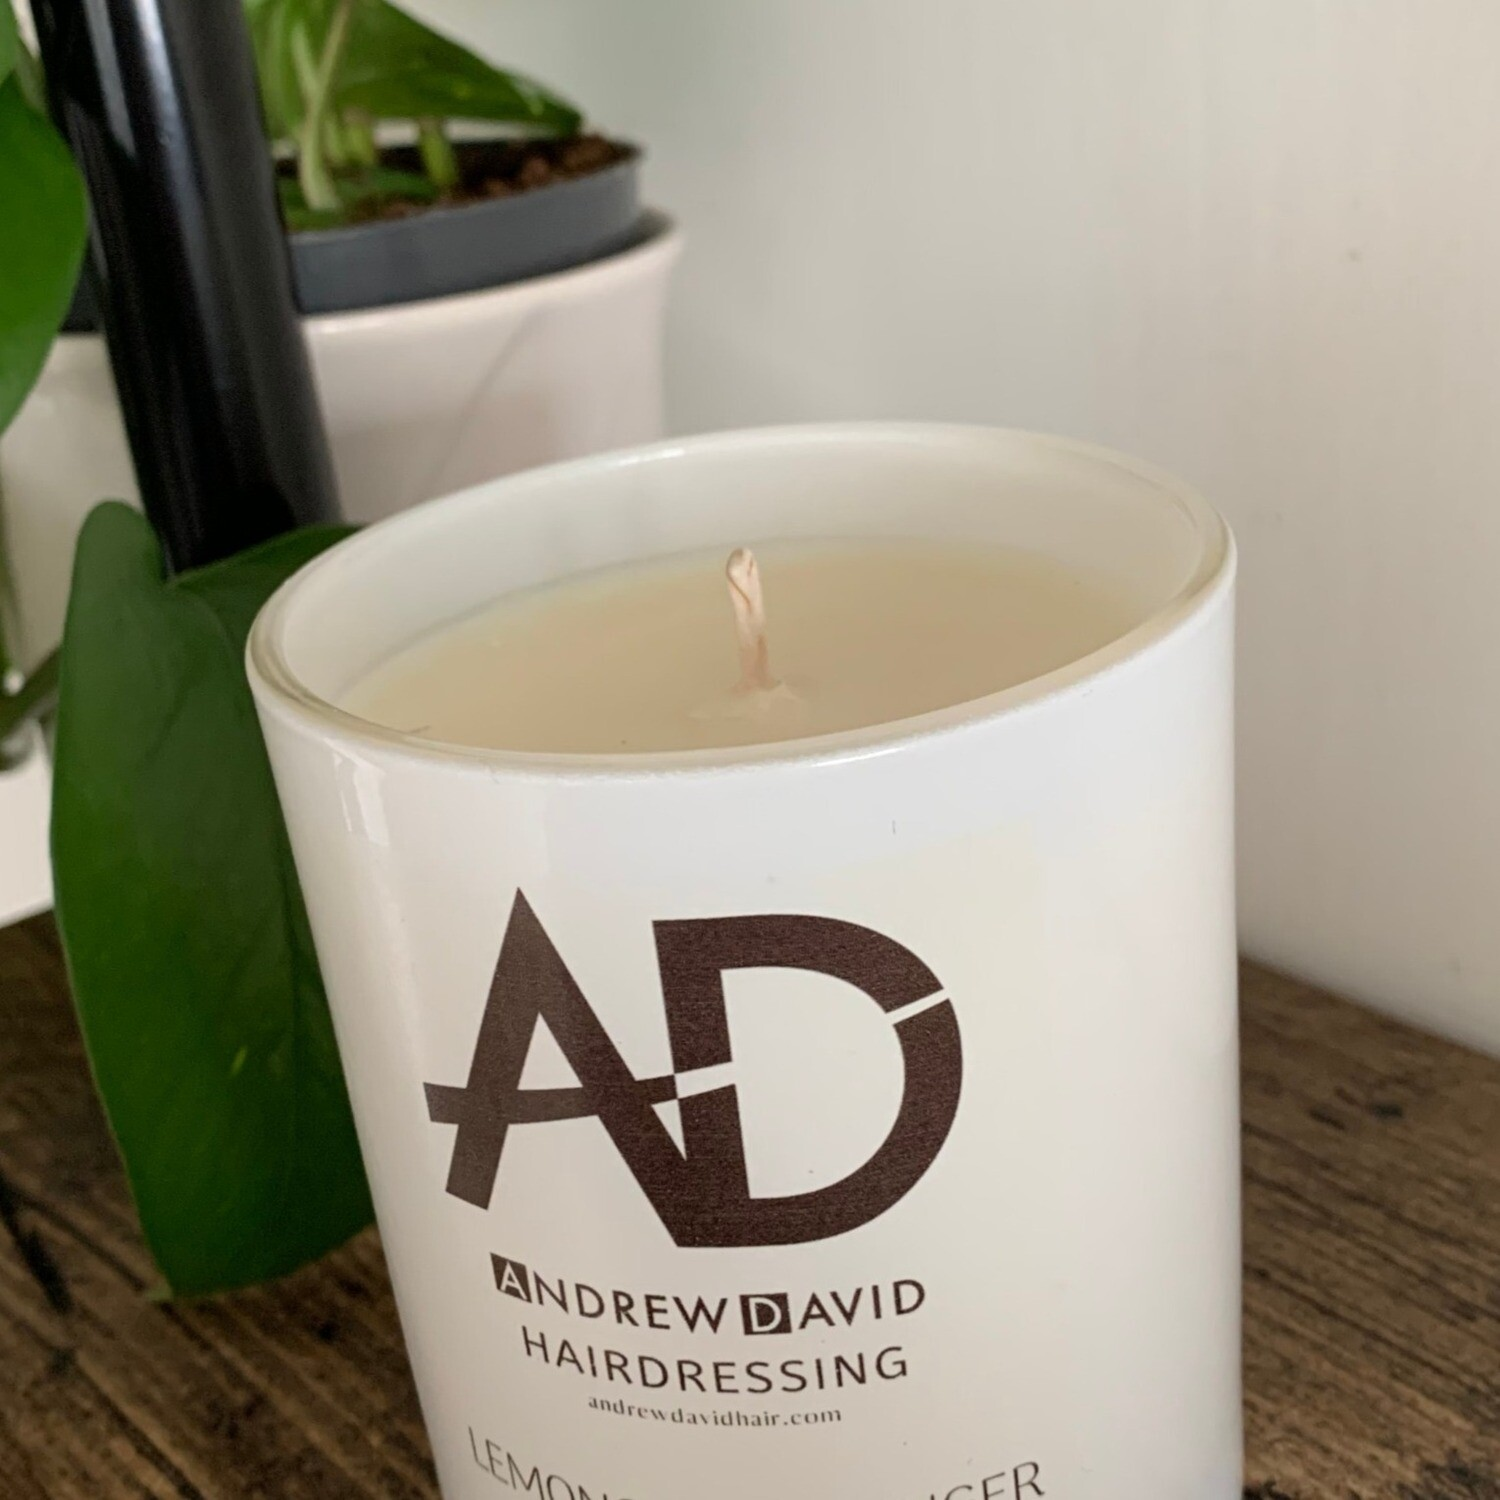 Lime, Basil & Manadrin Candle 30cl Large